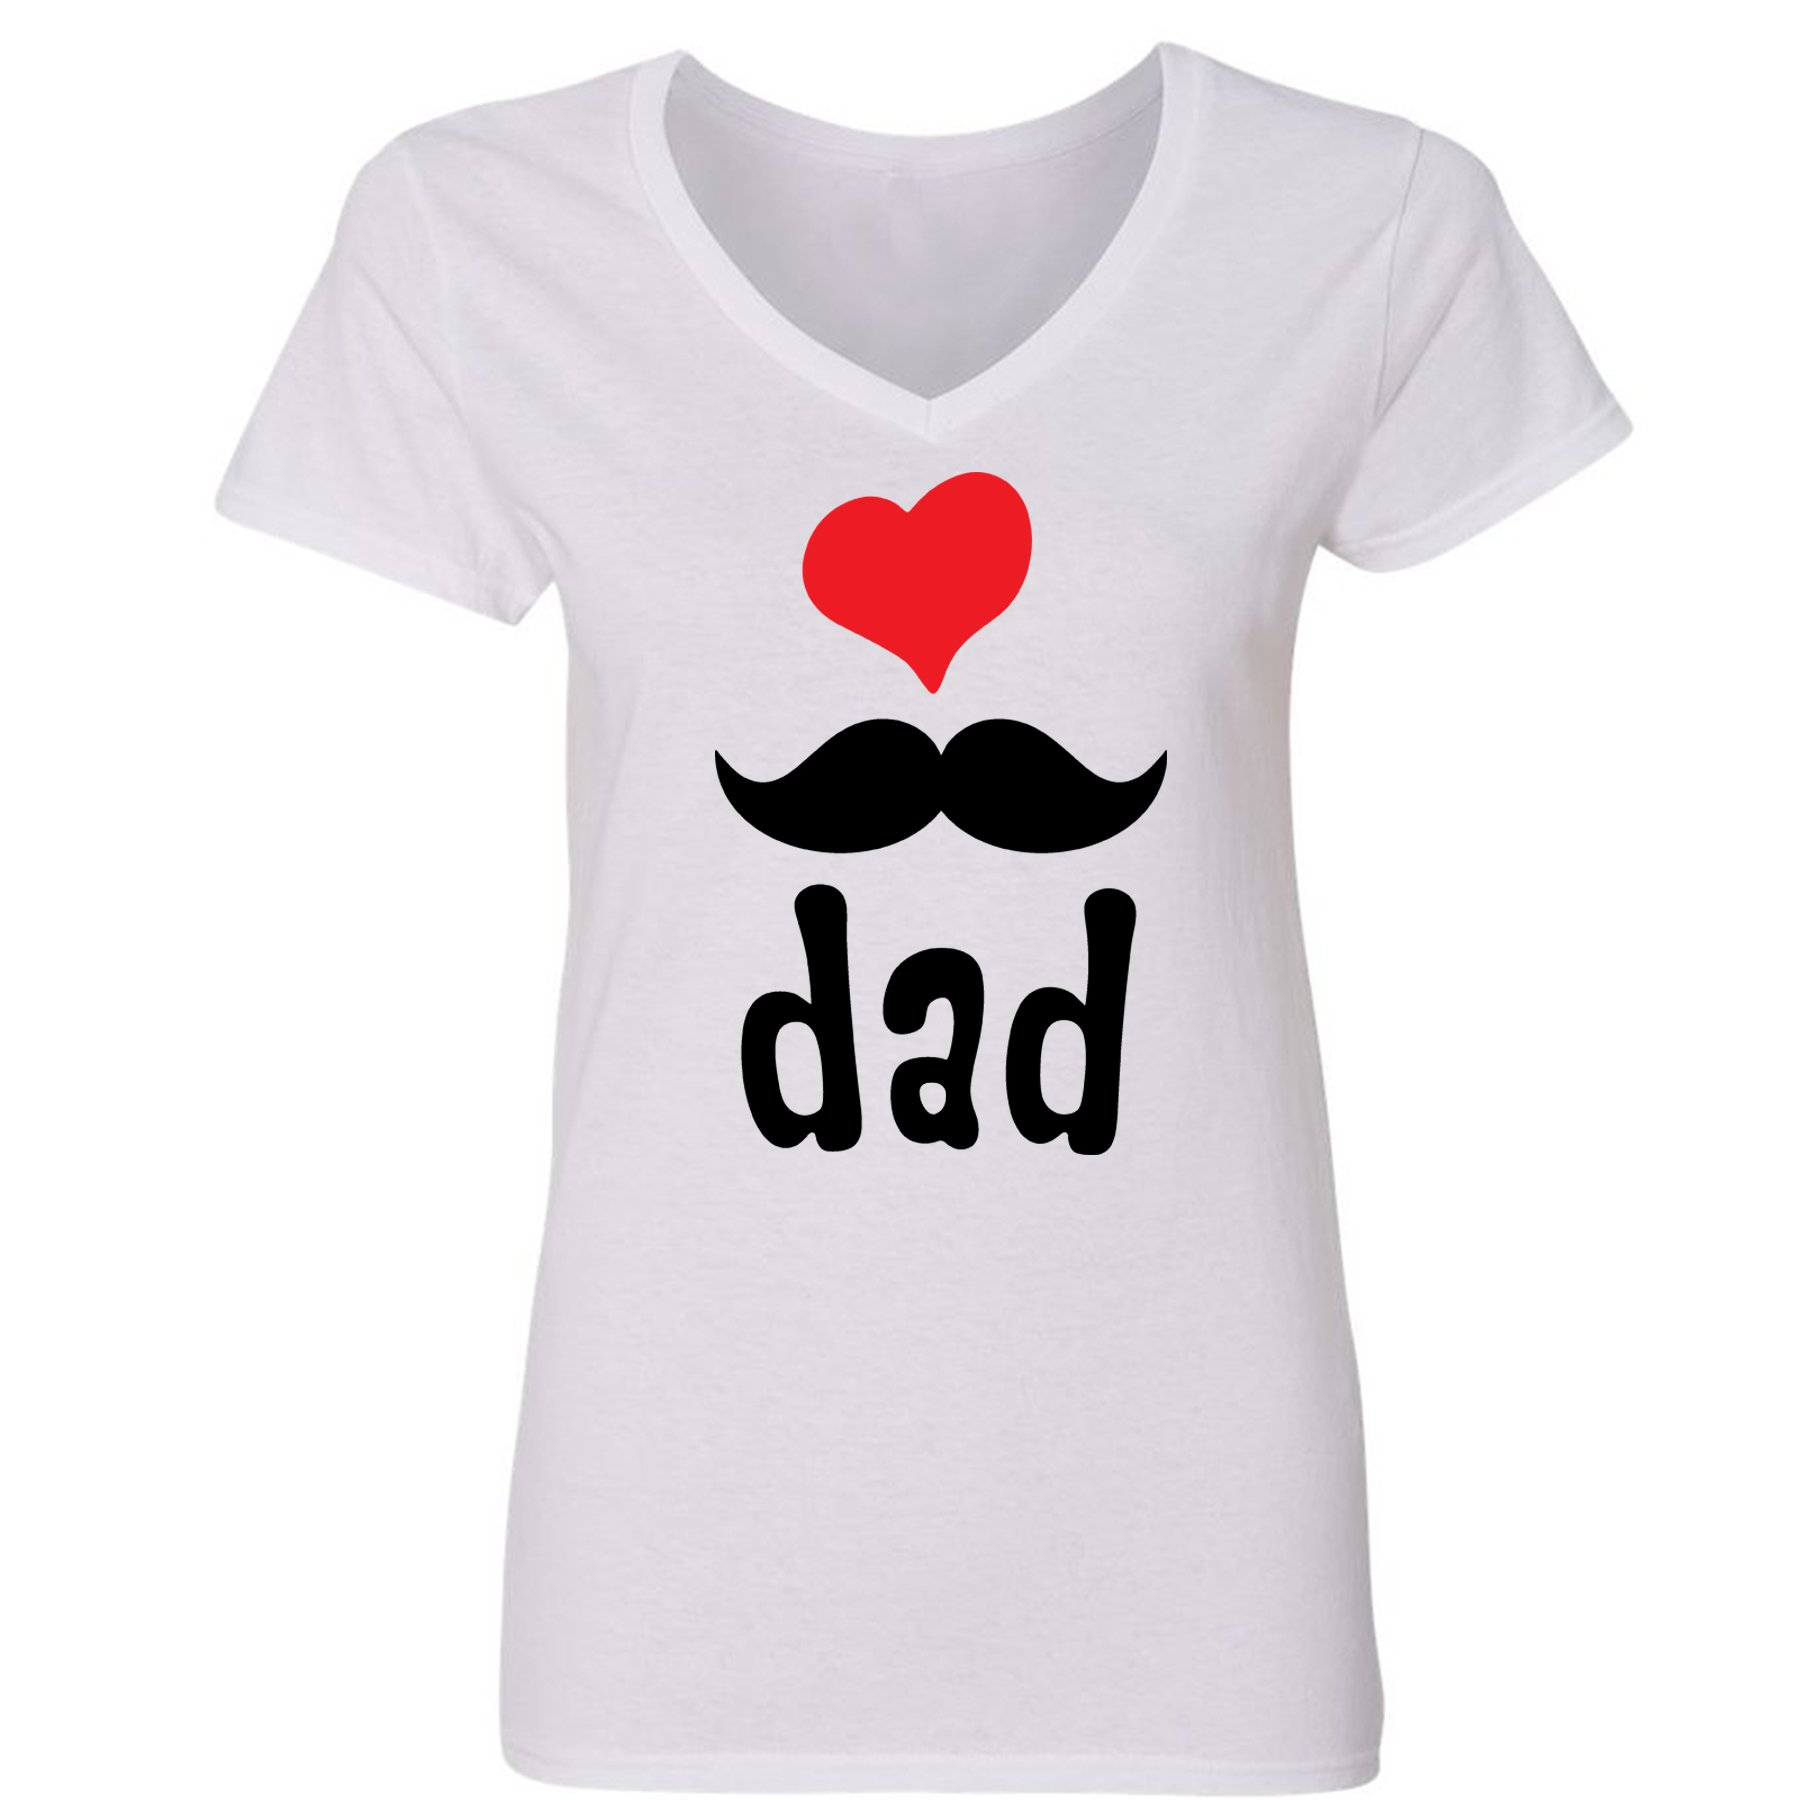 For Shirts I Love Dad Father S Day Gifts Shirts 3124